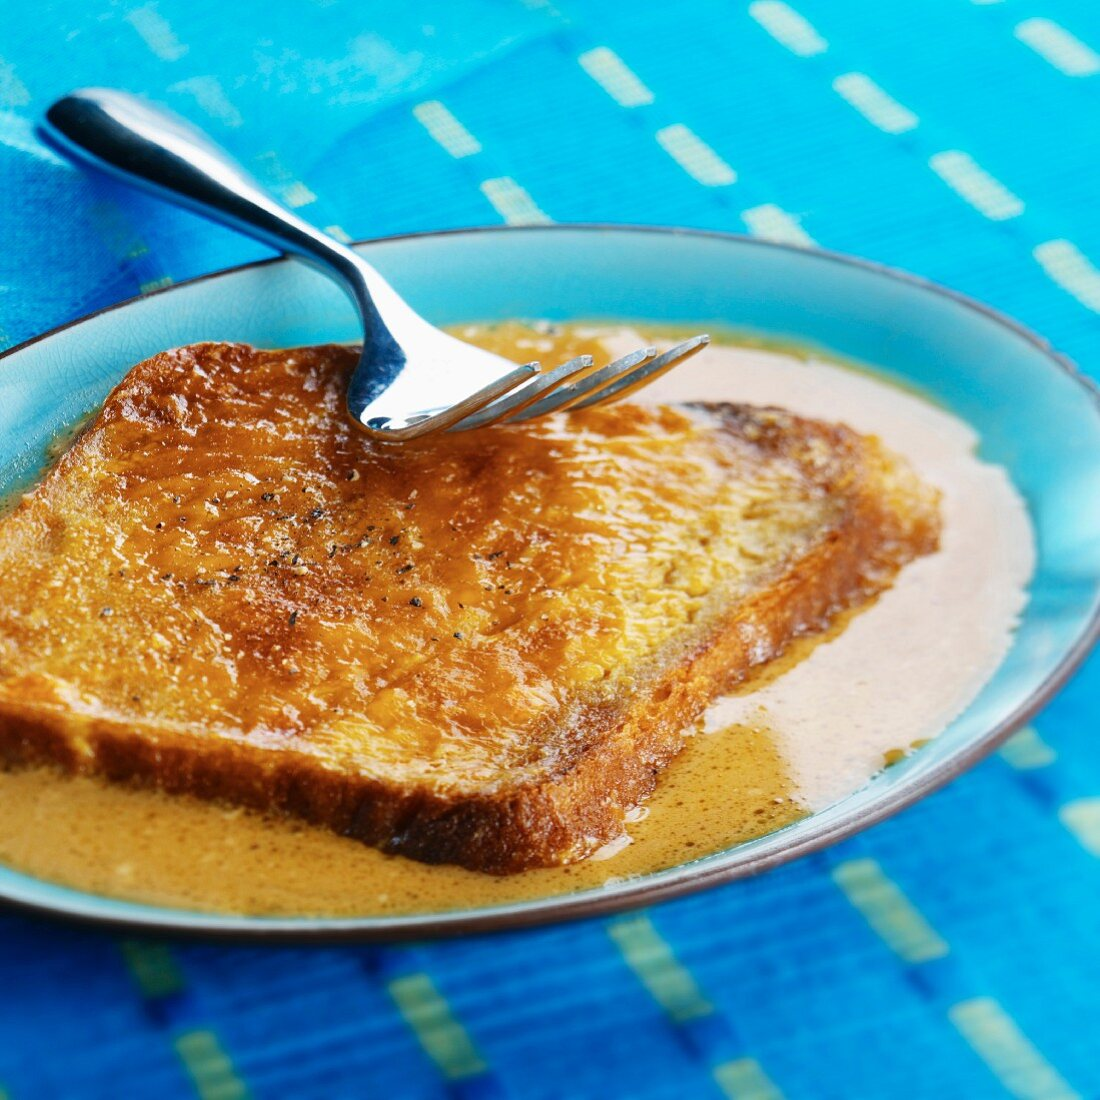 Welsh Rarebit (cheese on toast, Wales)